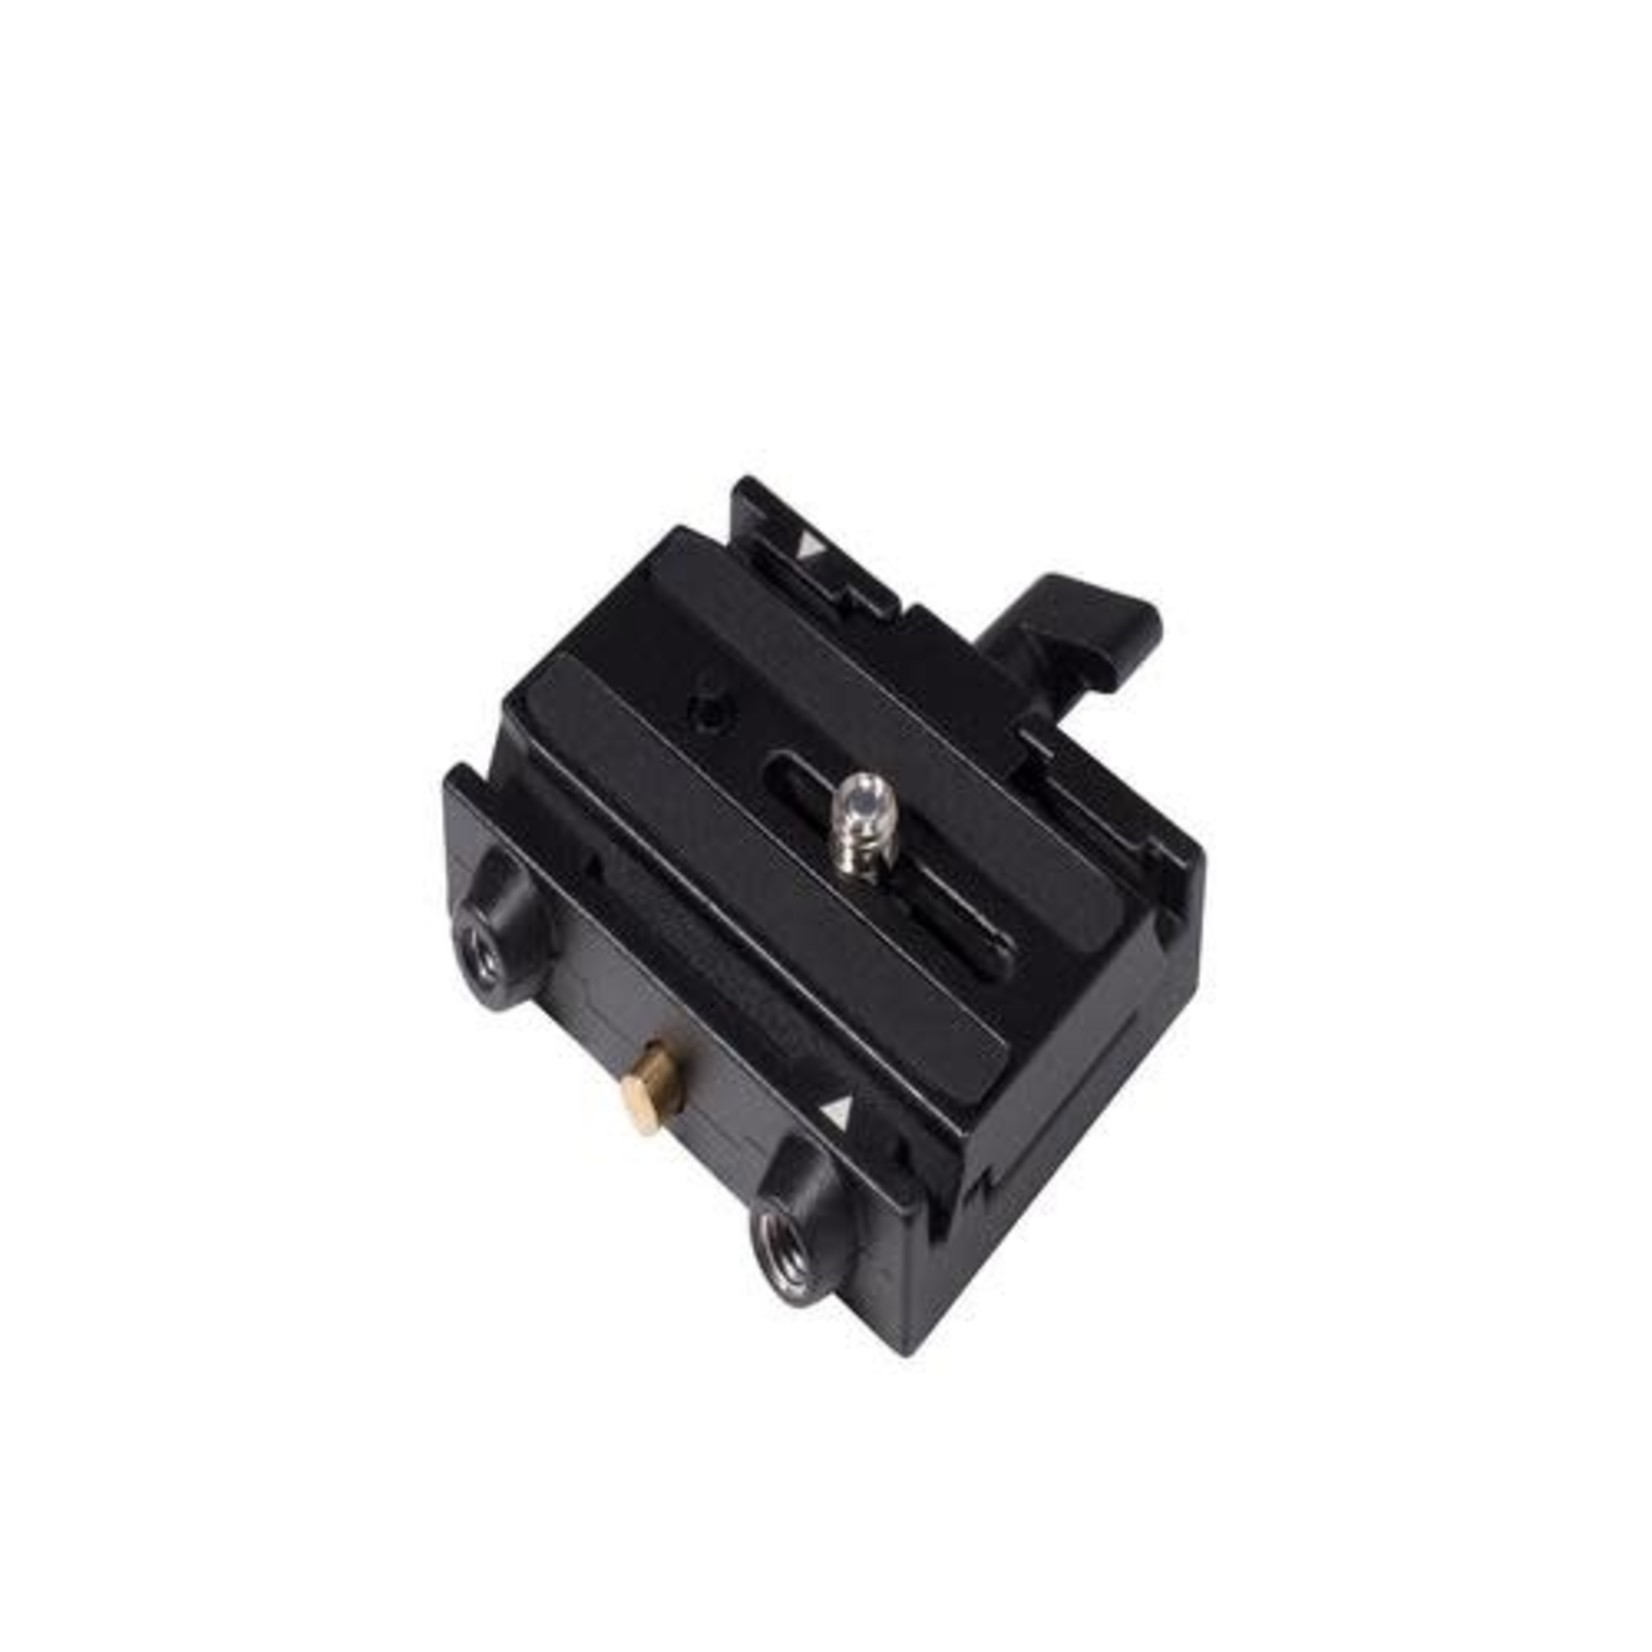 Manfrotto Manfrotto 577   Quick Release Adapter with Sliding Plate and Safety Lock